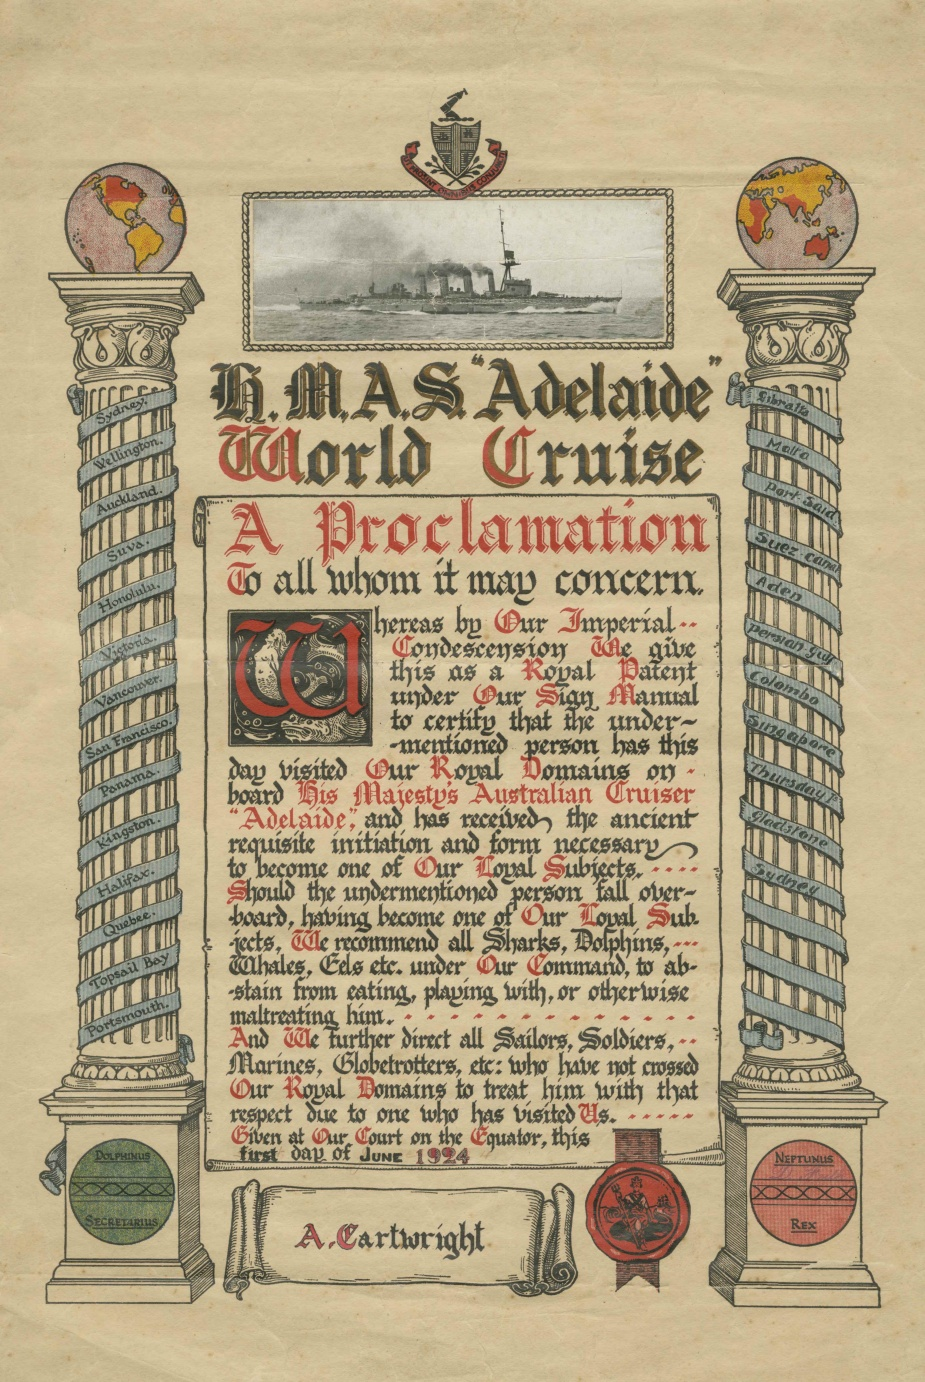 A certificate from HMAS Adelaide's 1924 world cruise.